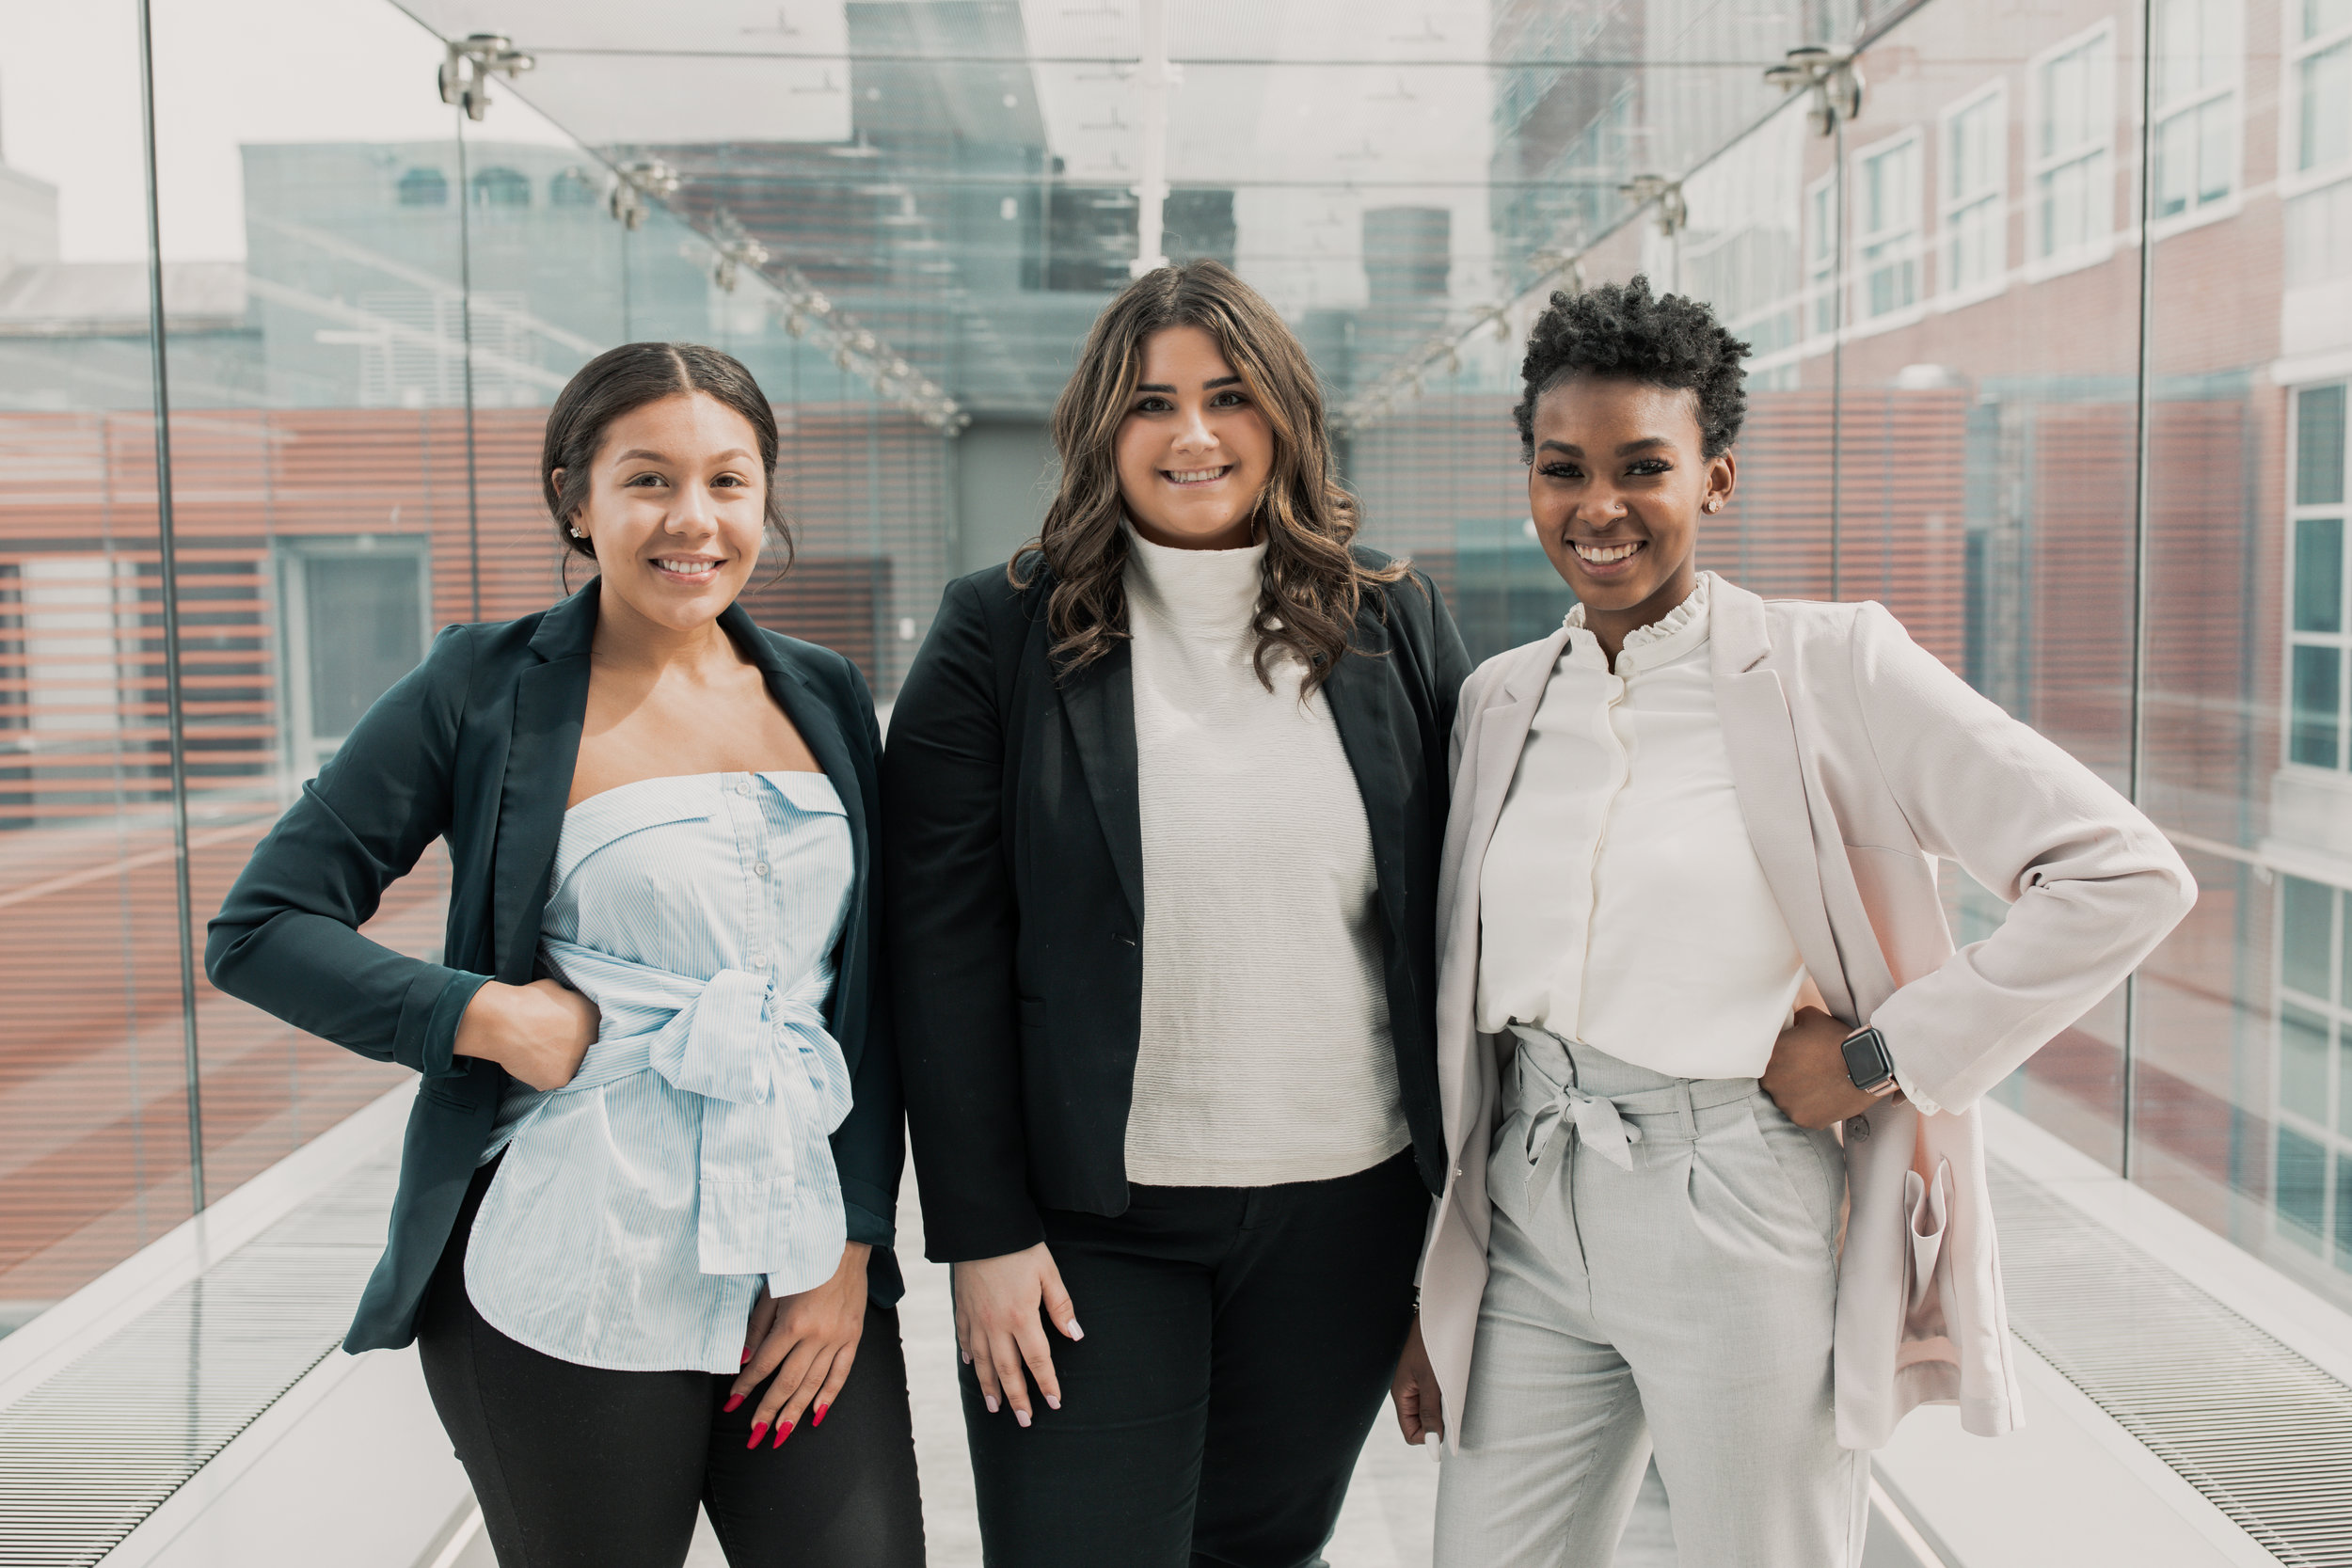 From left to right: Kaya Jones, Vice President of External Affairs candidate; Francesca Capozzi, Presidential candidate; Laryssa Banks, Vice President of Services candidate. | PHOTO: Saba Ahmed